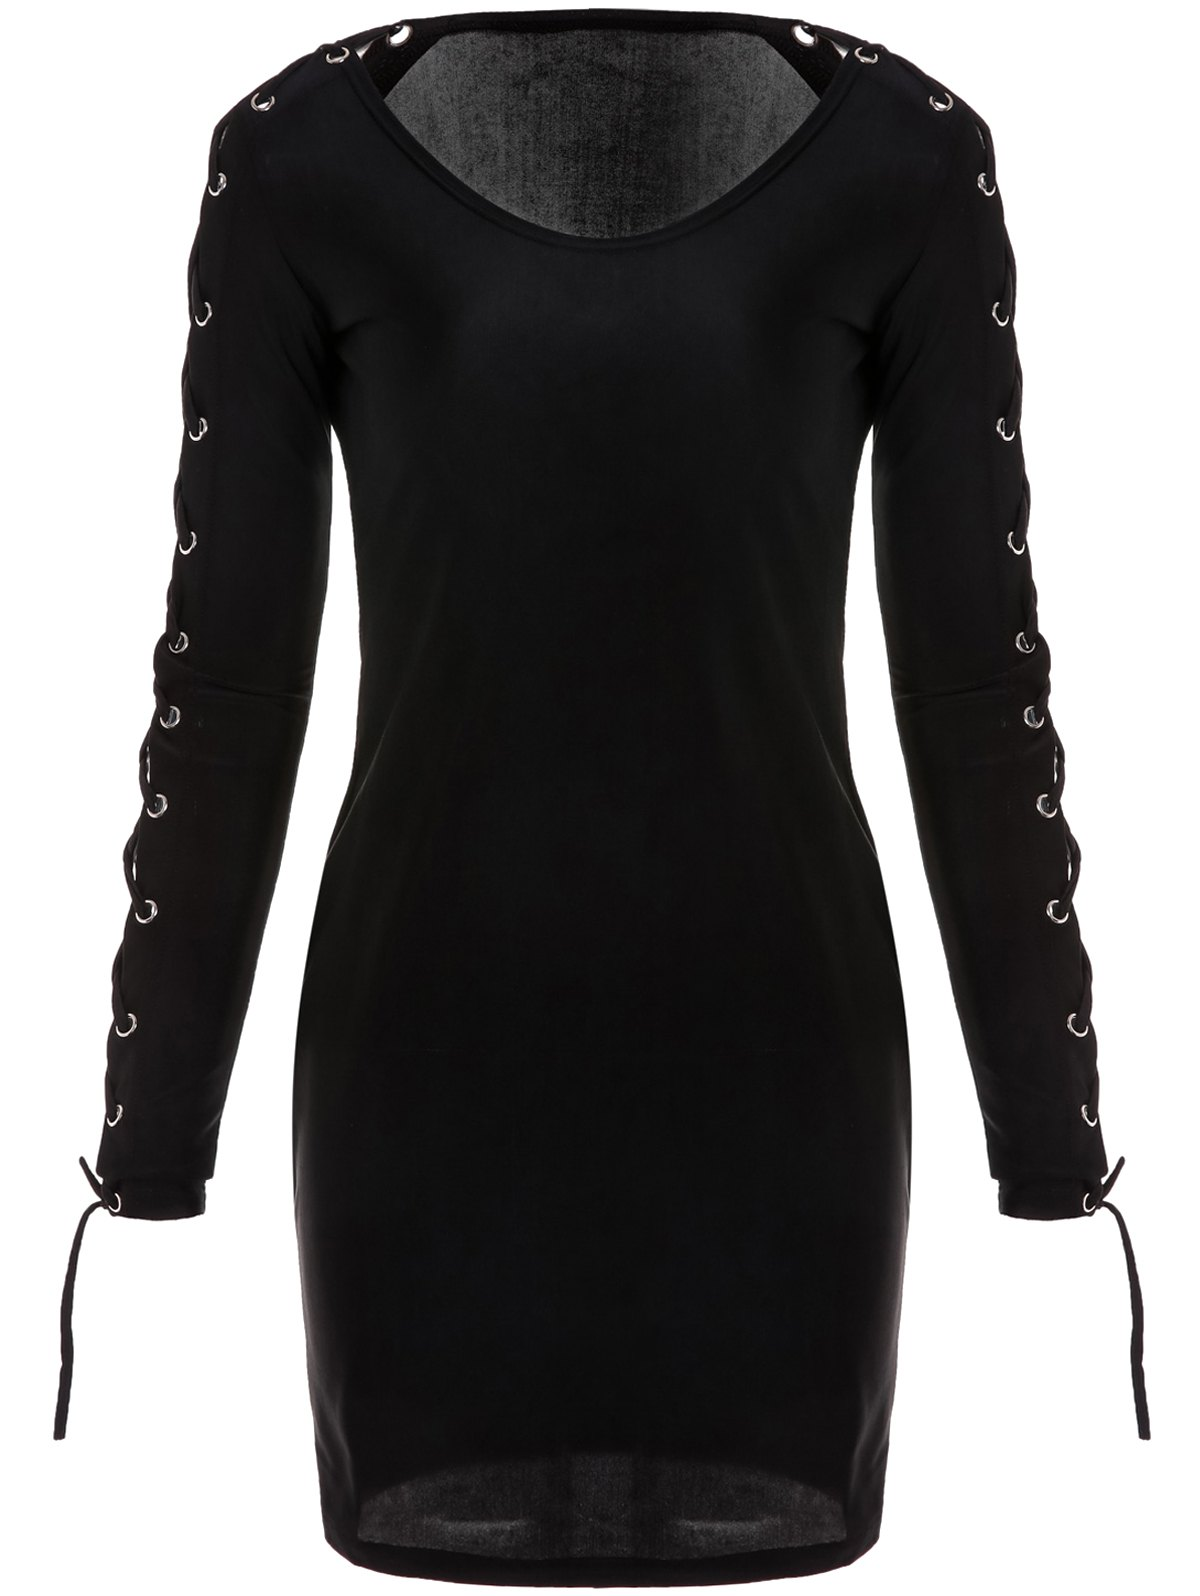 Sexy Plunging Collar Long Sleeve Bodycon Hollow Out Women's Dress - BLACK M